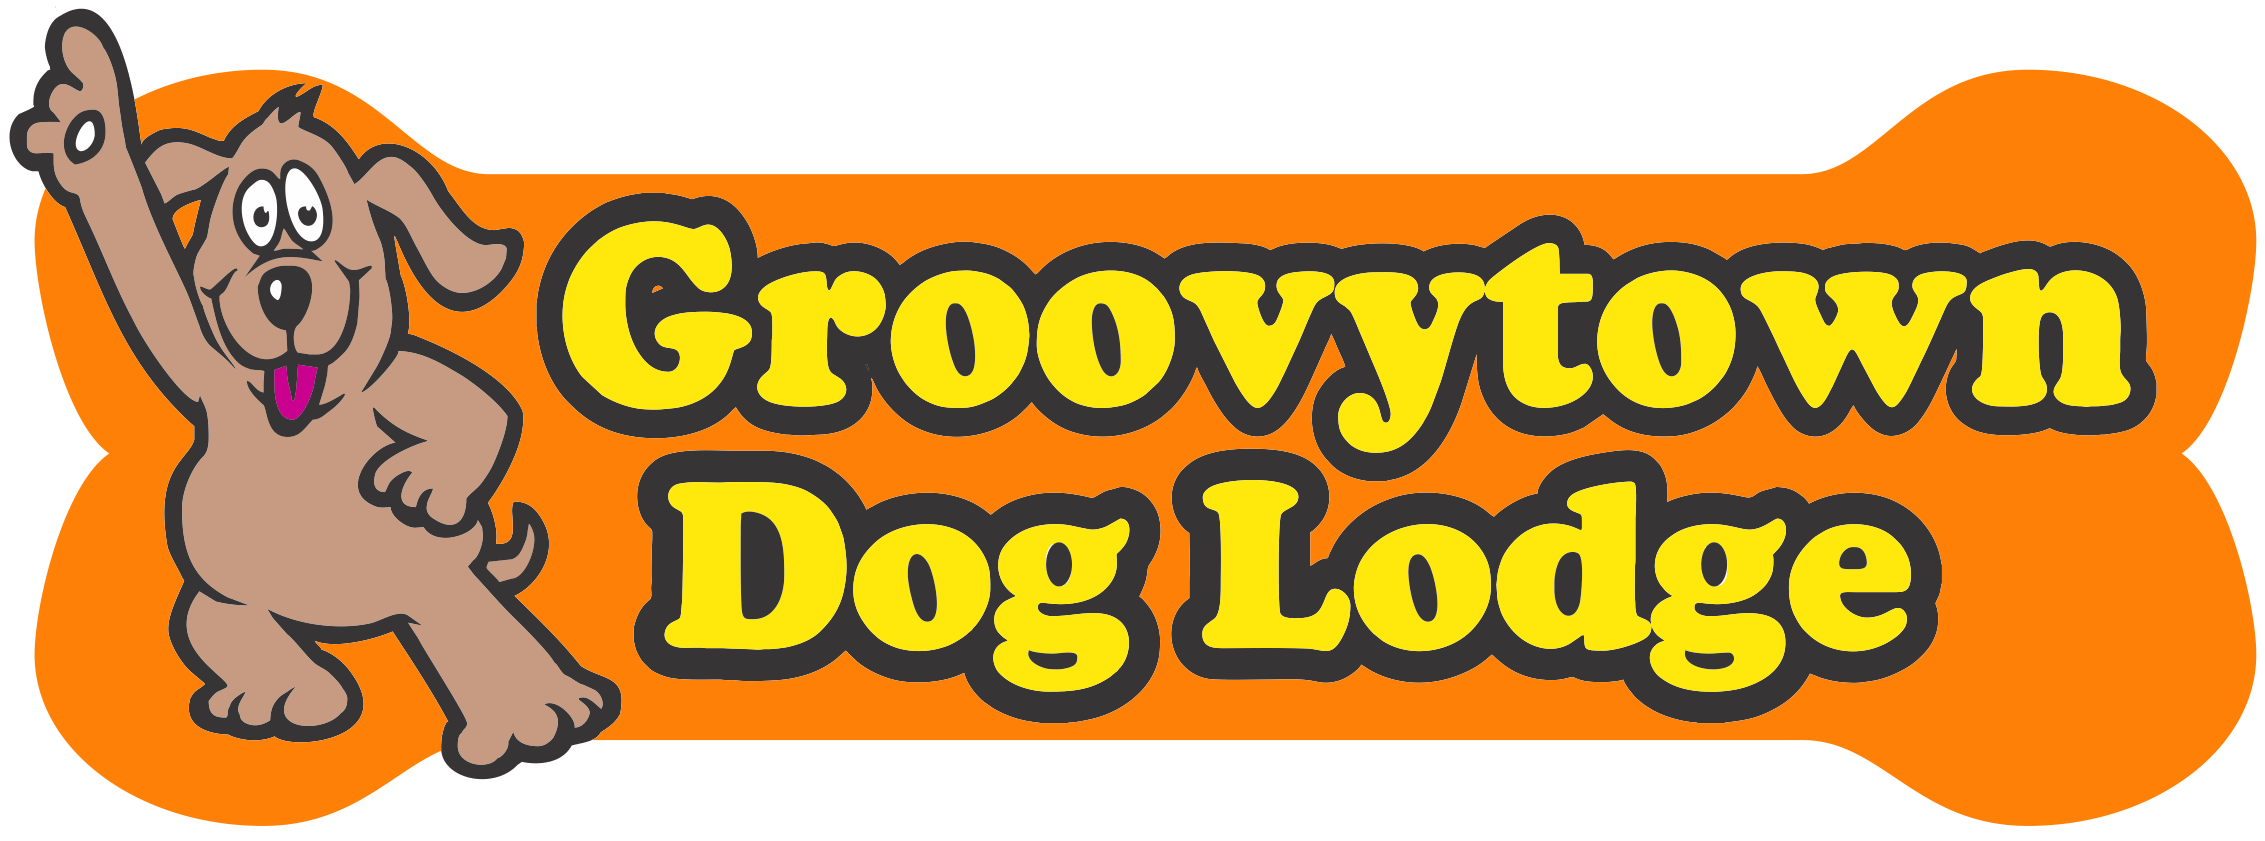 Groovytown Dog Lodge